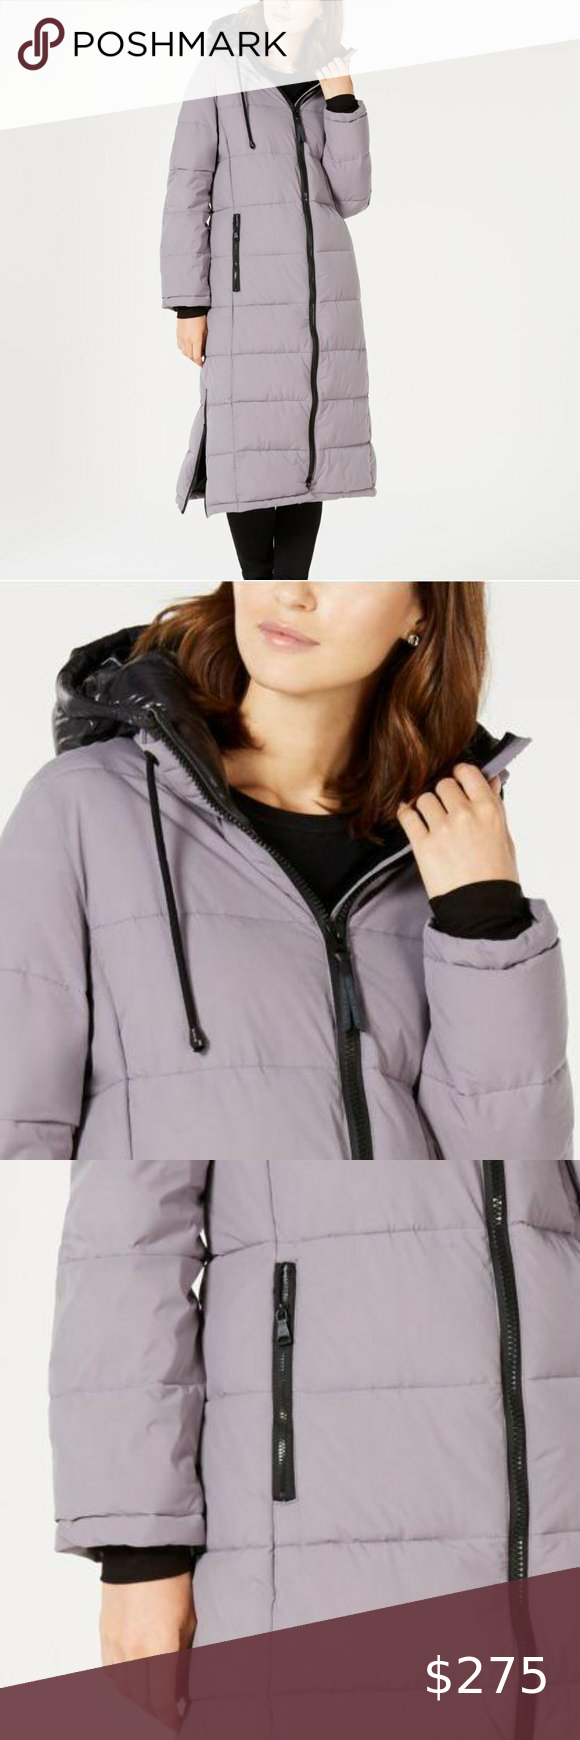 Vince Camuto Oversized Hooded Maxi Puffer Coat Puffer Coat Fashion Vince Camuto [ 1740 x 580 Pixel ]